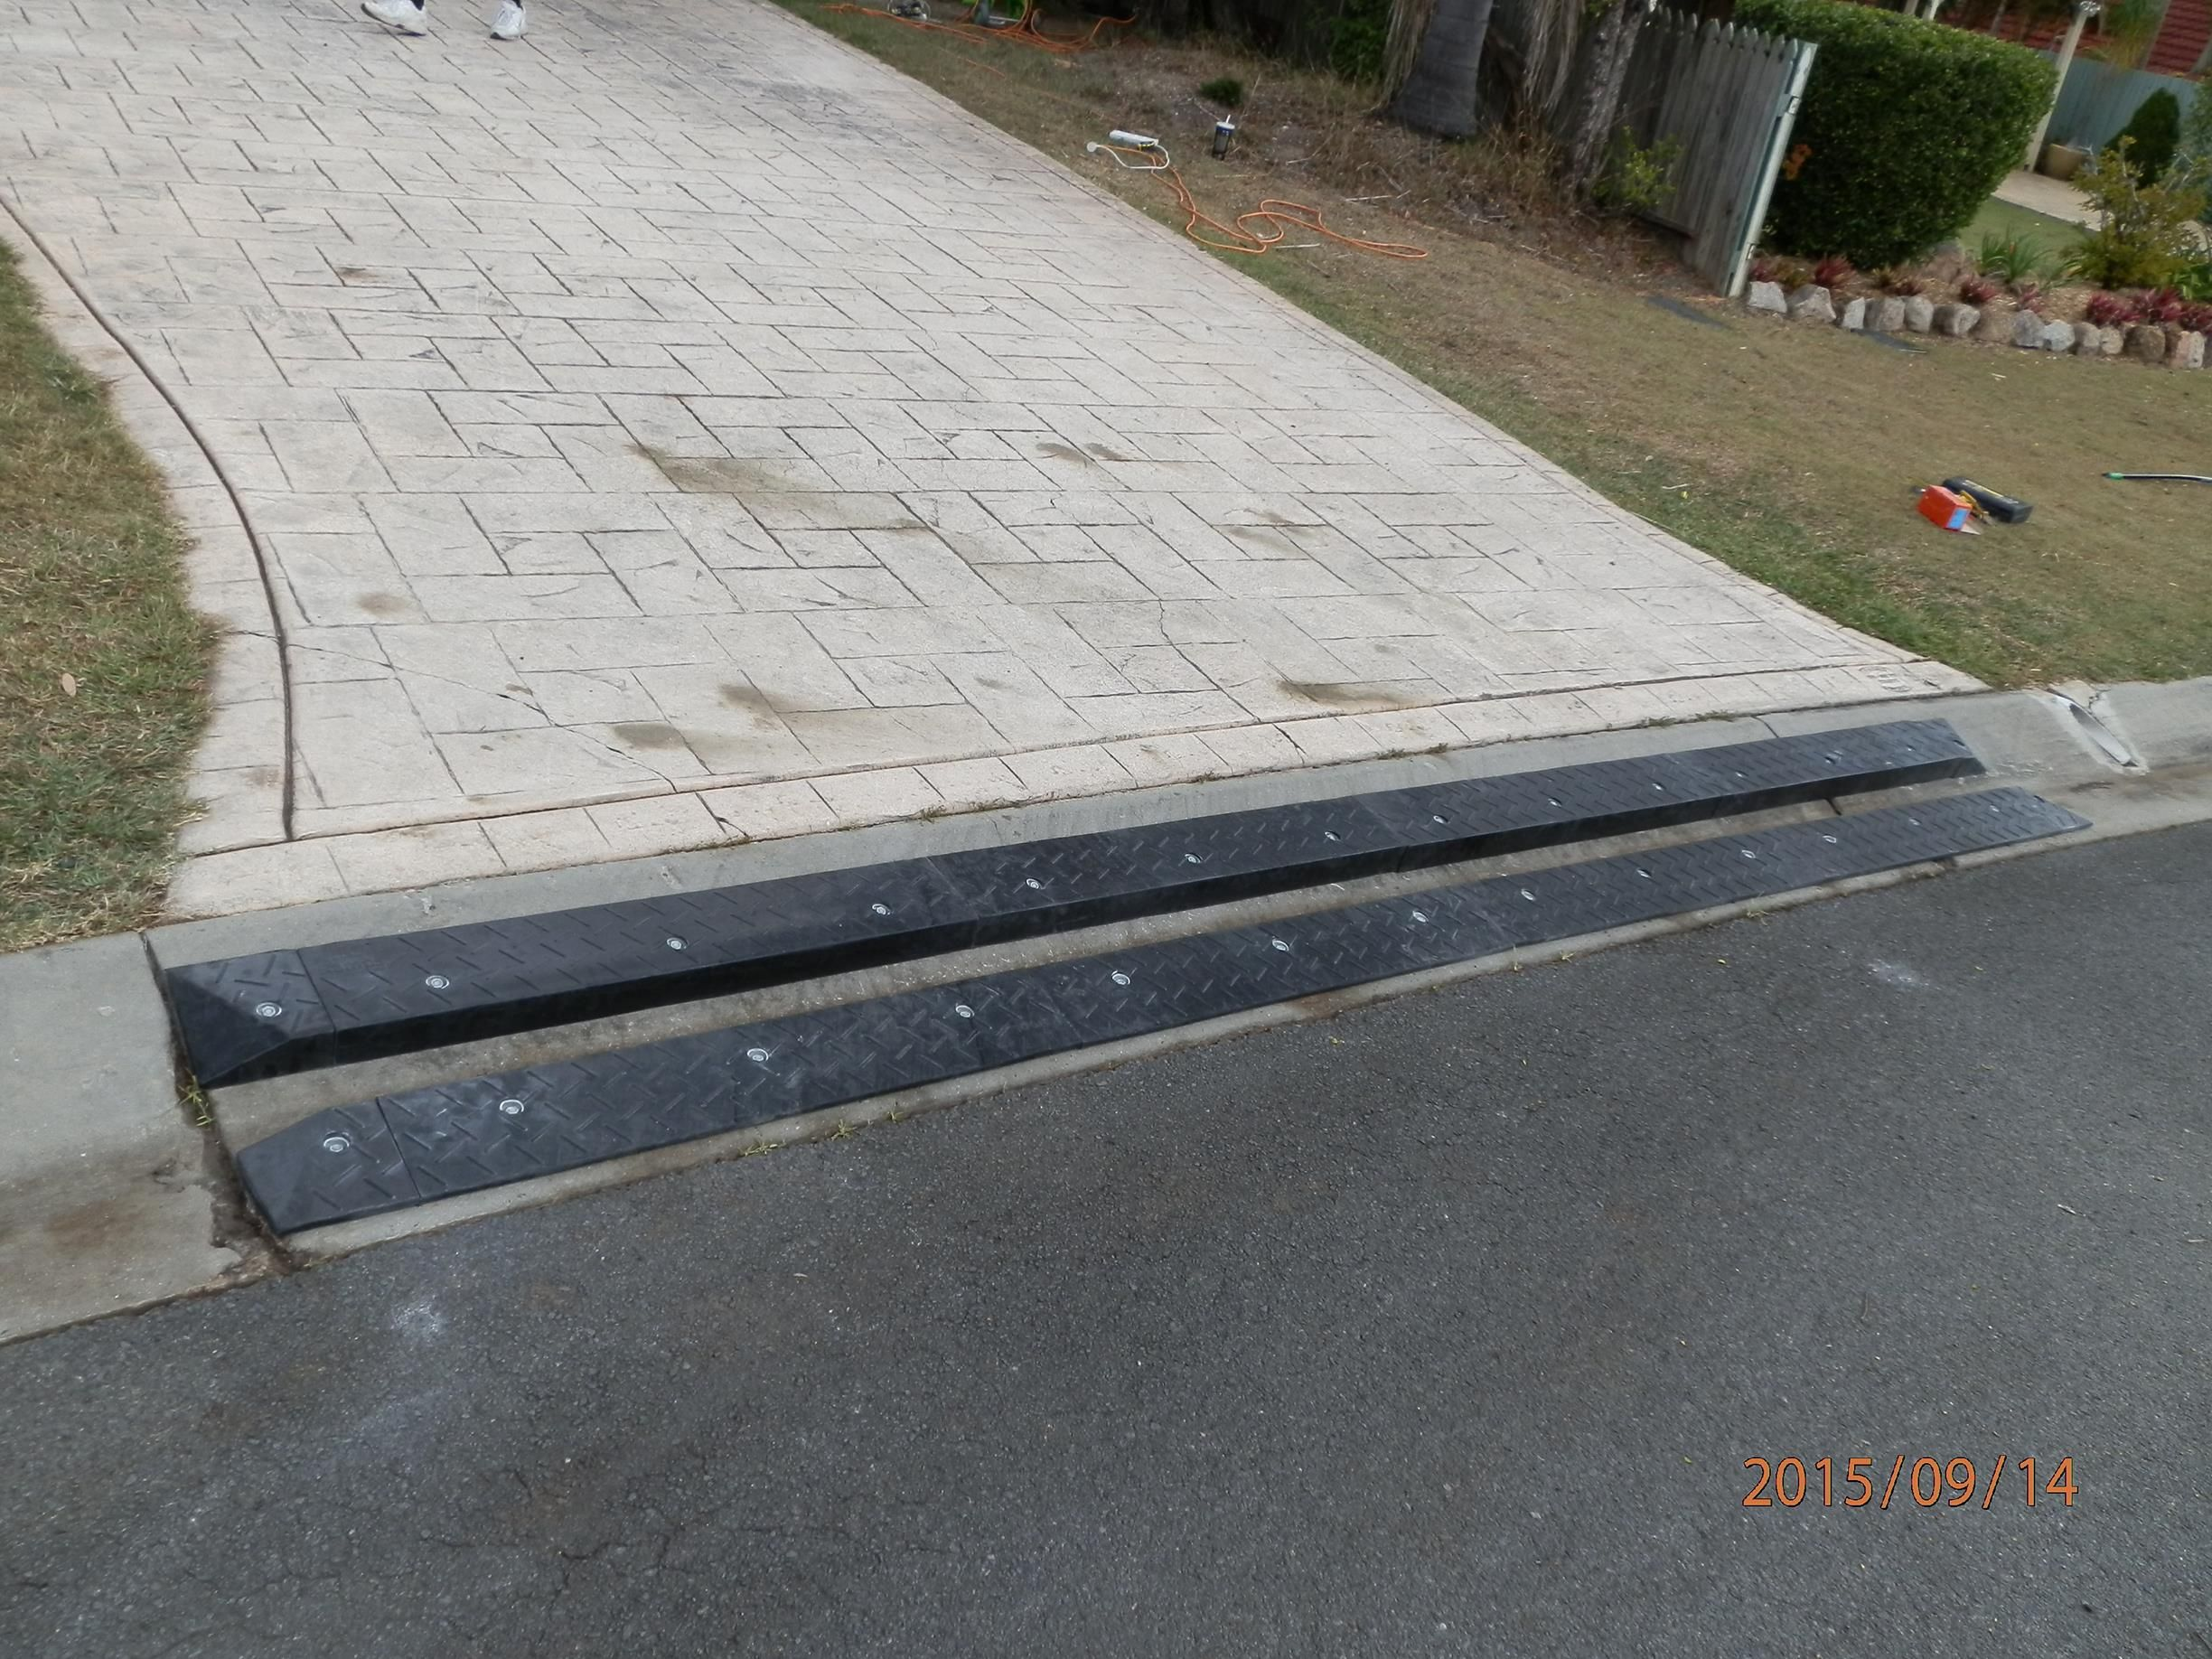 Car Bottoming Out These Heavy Duty Rubber Driveway Ramps Gutter Ramps Curb Ramps Or Kerb Ramps Or Whatever You Call Driveway Ramp Curb Ramp Front Gardens